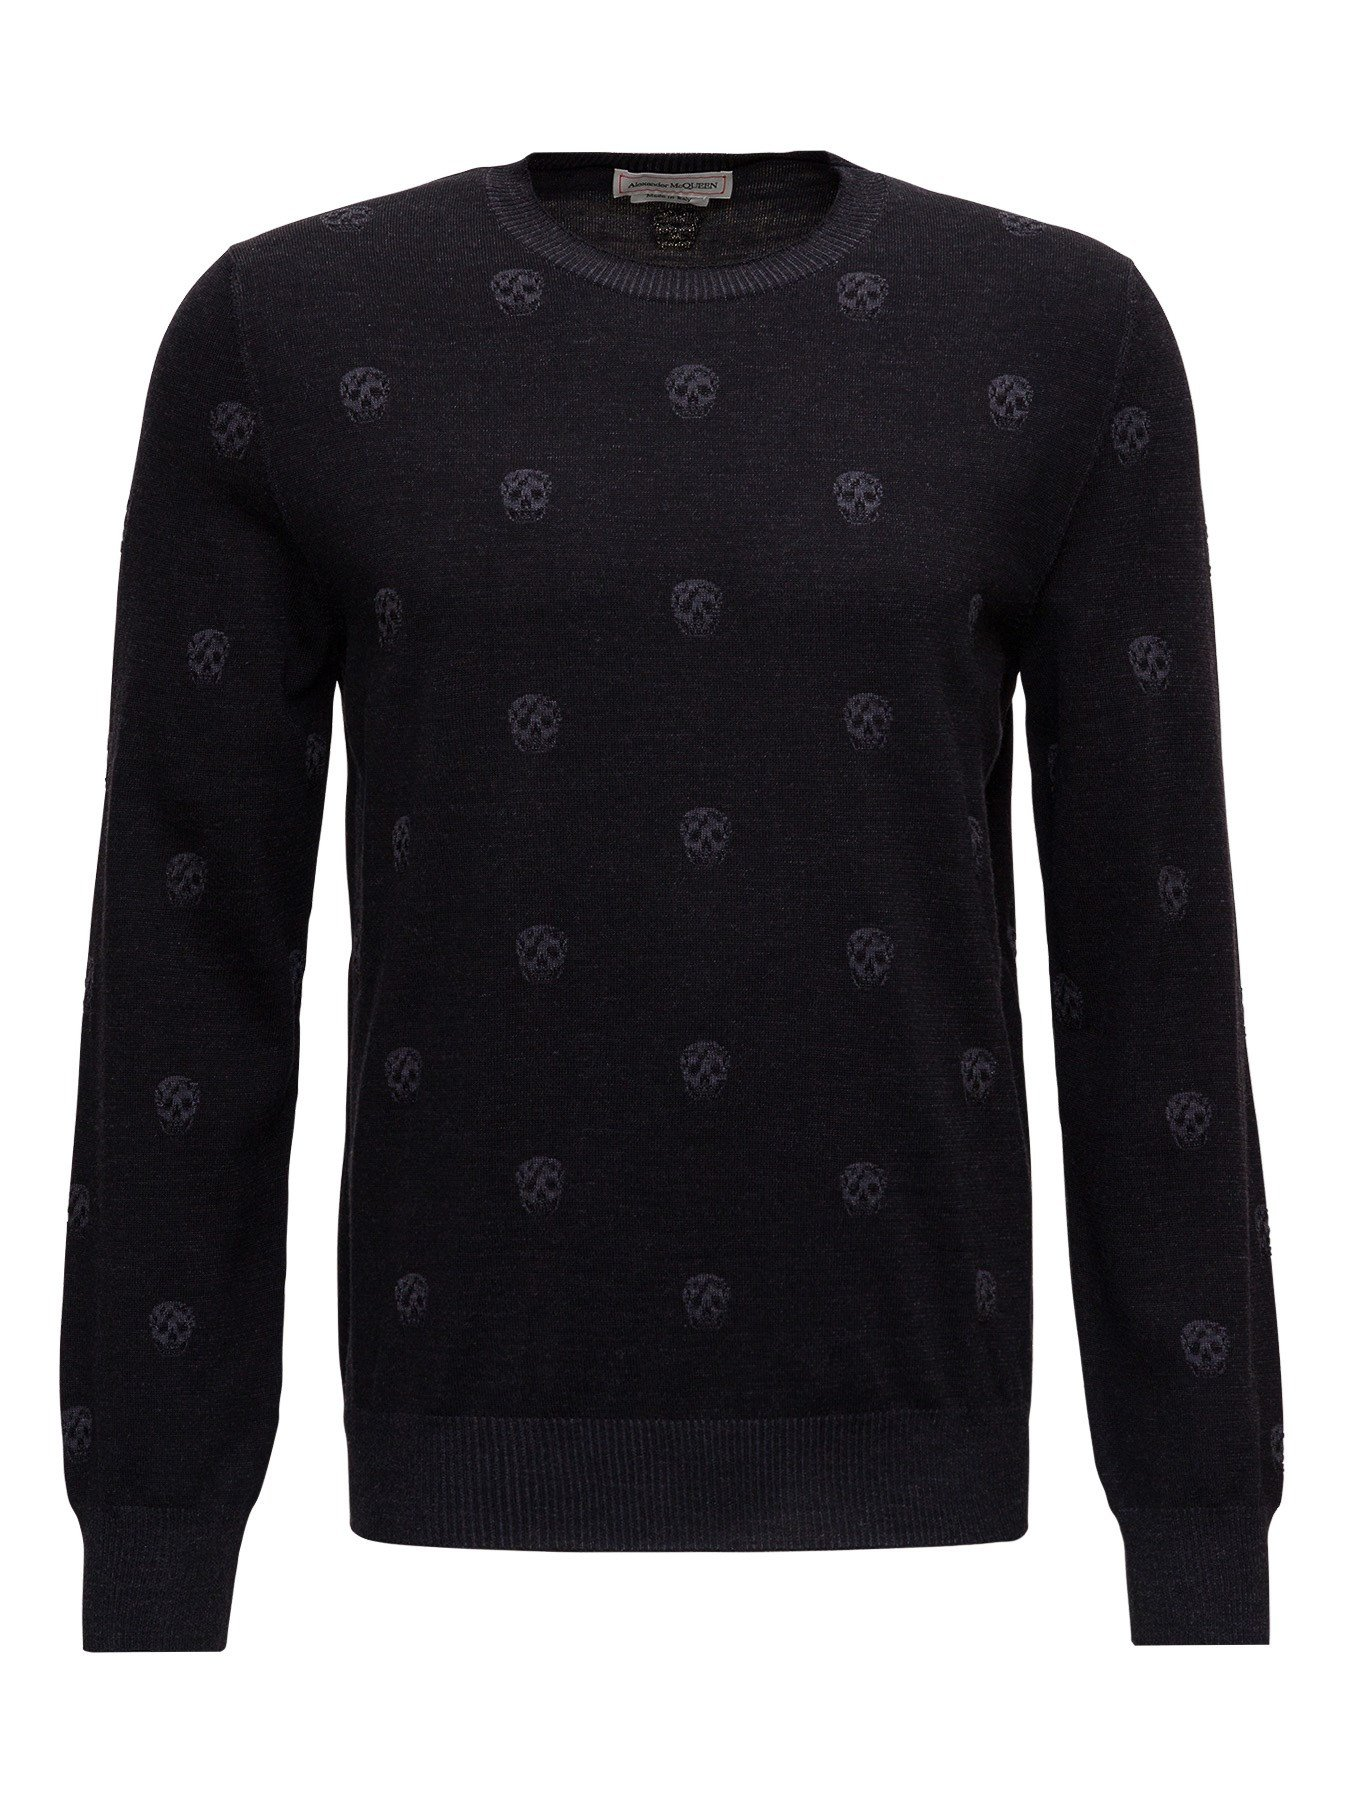 Blac Wool Jumper with Vanise Skull Allover Iytarsia